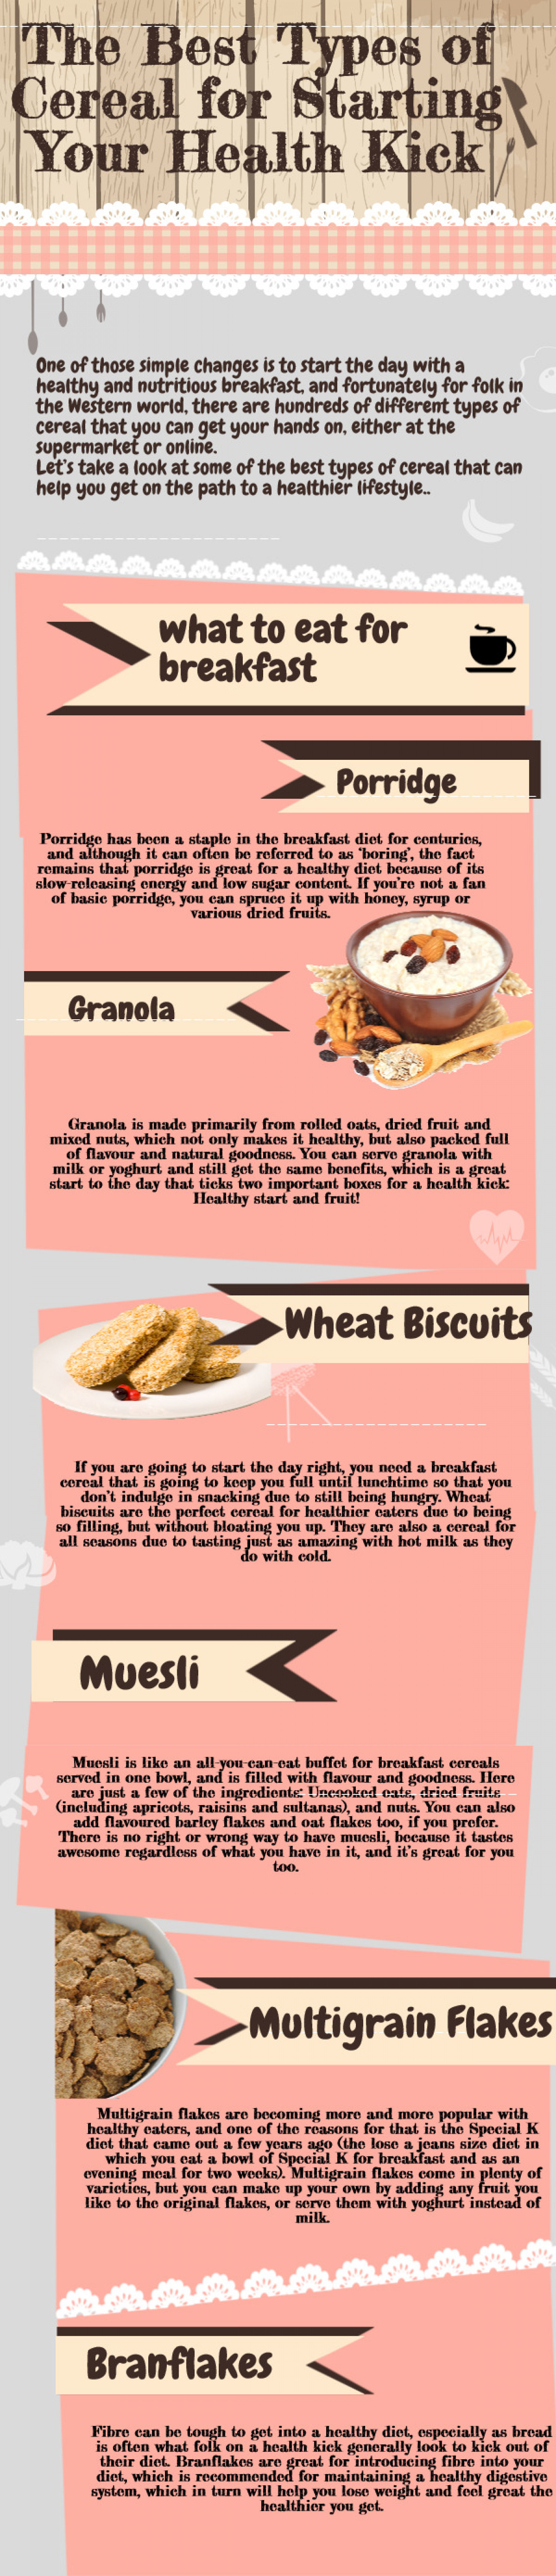 The Best Types of Cereal for Starting Your Health Kick Infographic